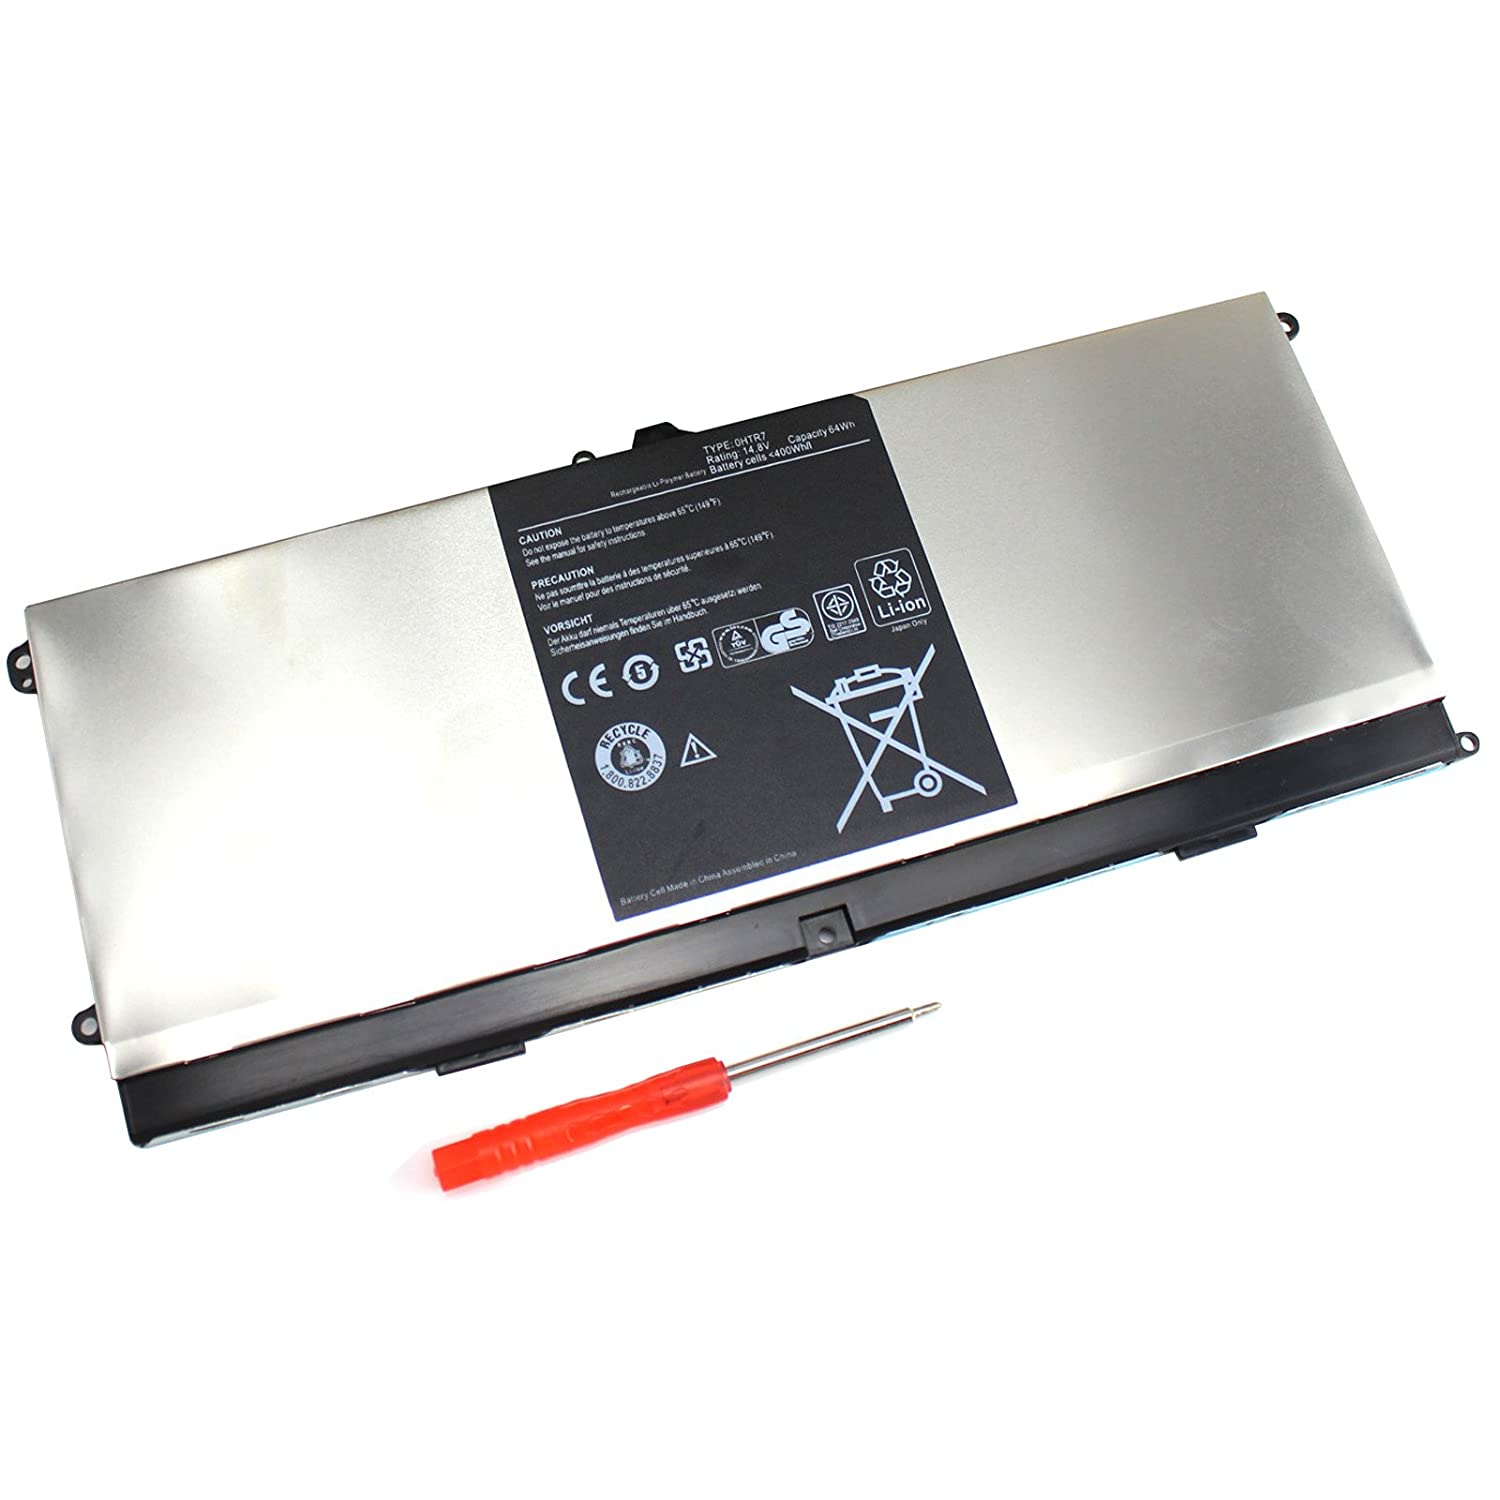 Amazon.com: ROCKETY New XPS 15Z 8cell Laptop Battery for Dell XPS L511Z  0NMV5C 0HTR7 NMV5C 075WY2 75WY2 OHTR7 CN-075WY2 - [14.8V 64WH]: Computers &  ...